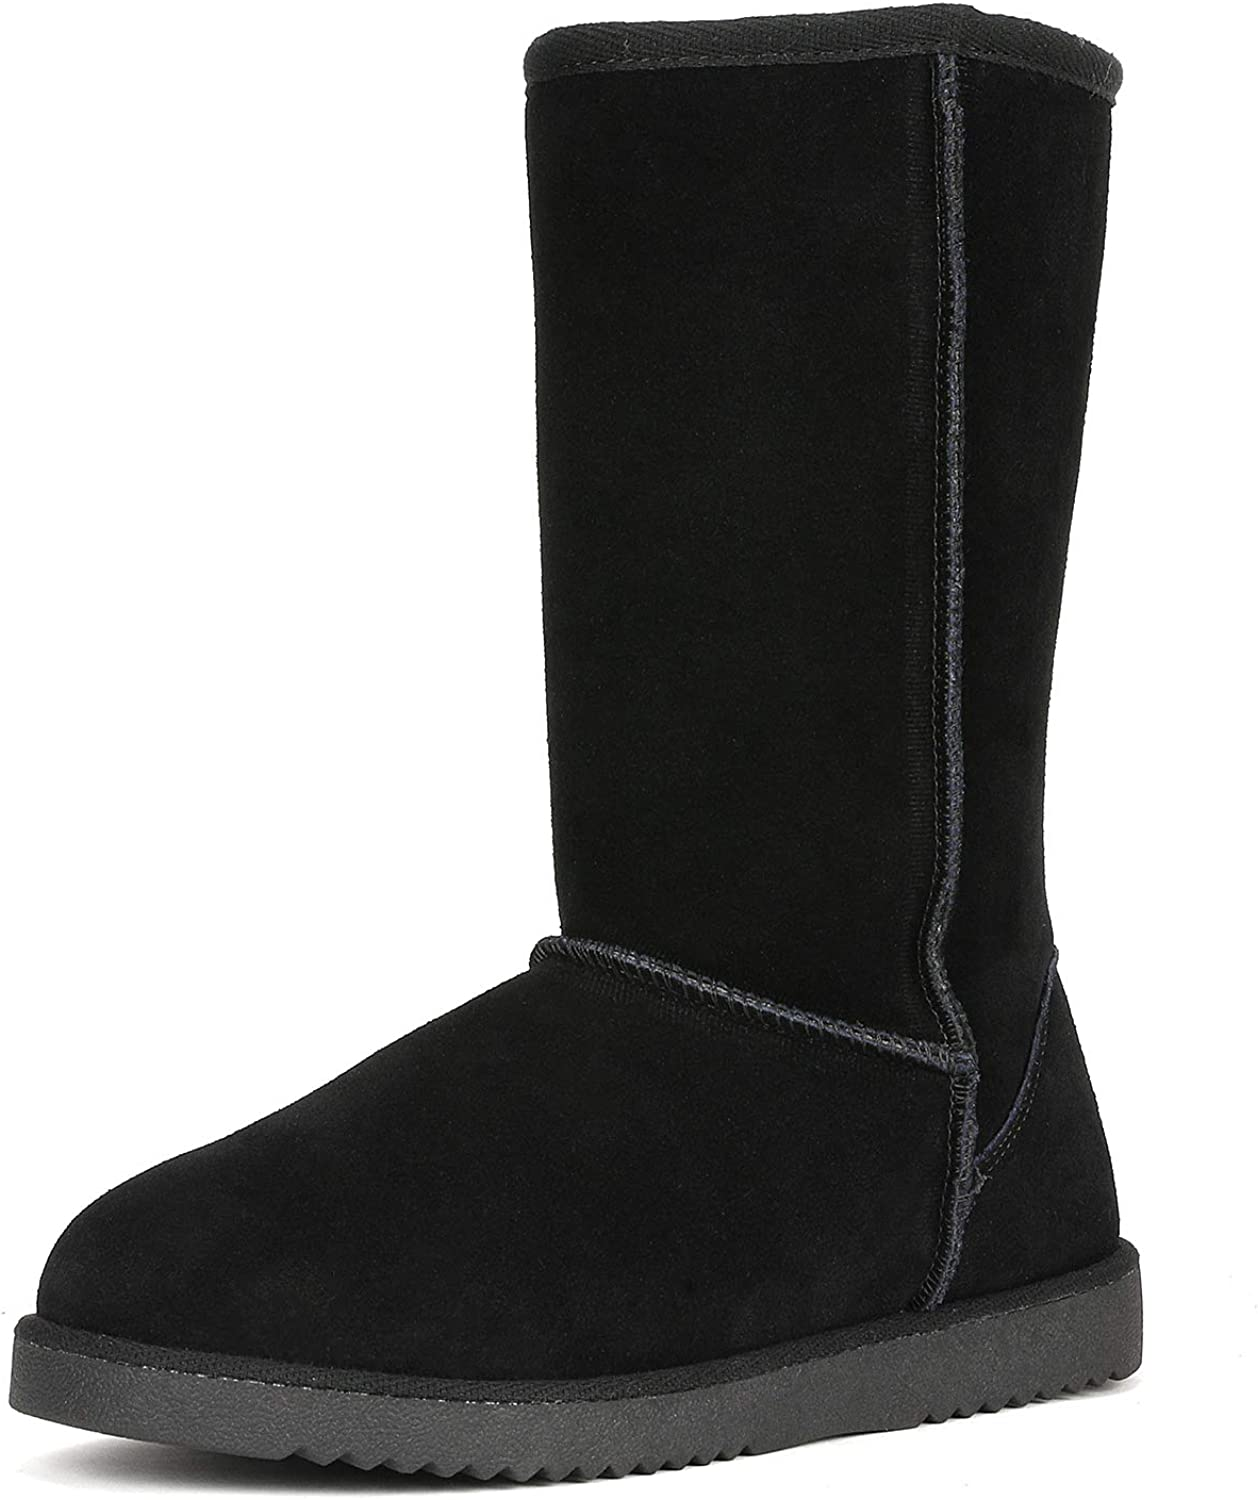 DREAM PAIRS Women's Shorty-New Mid Calf Winter Snow Boots